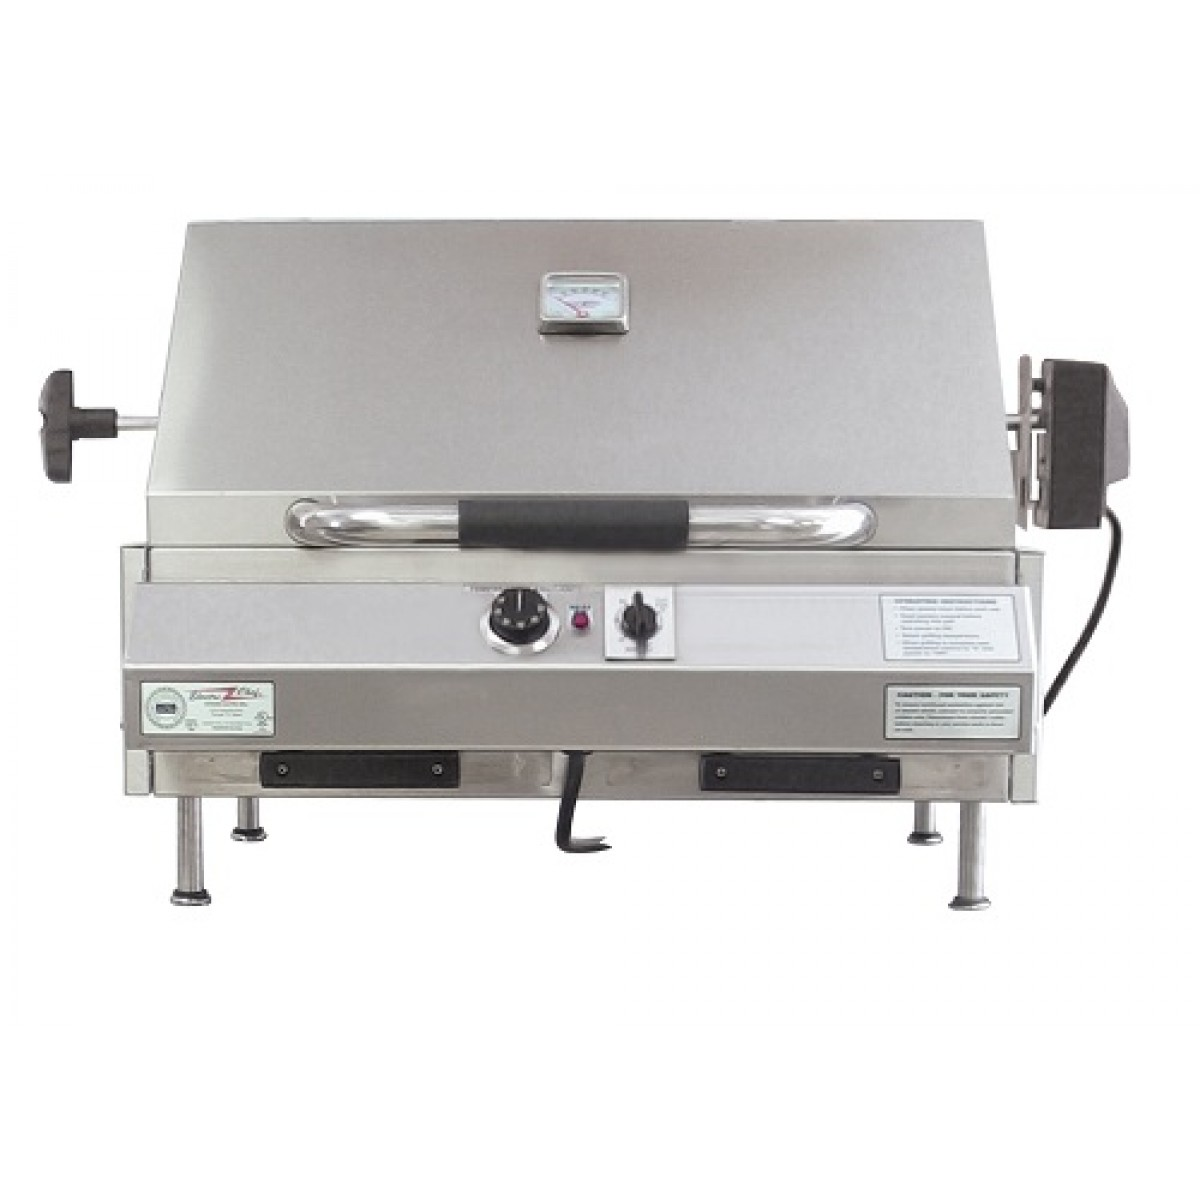 Electri chef 4400 series 24 table top barbecue grill - Table top barbecue grill ...